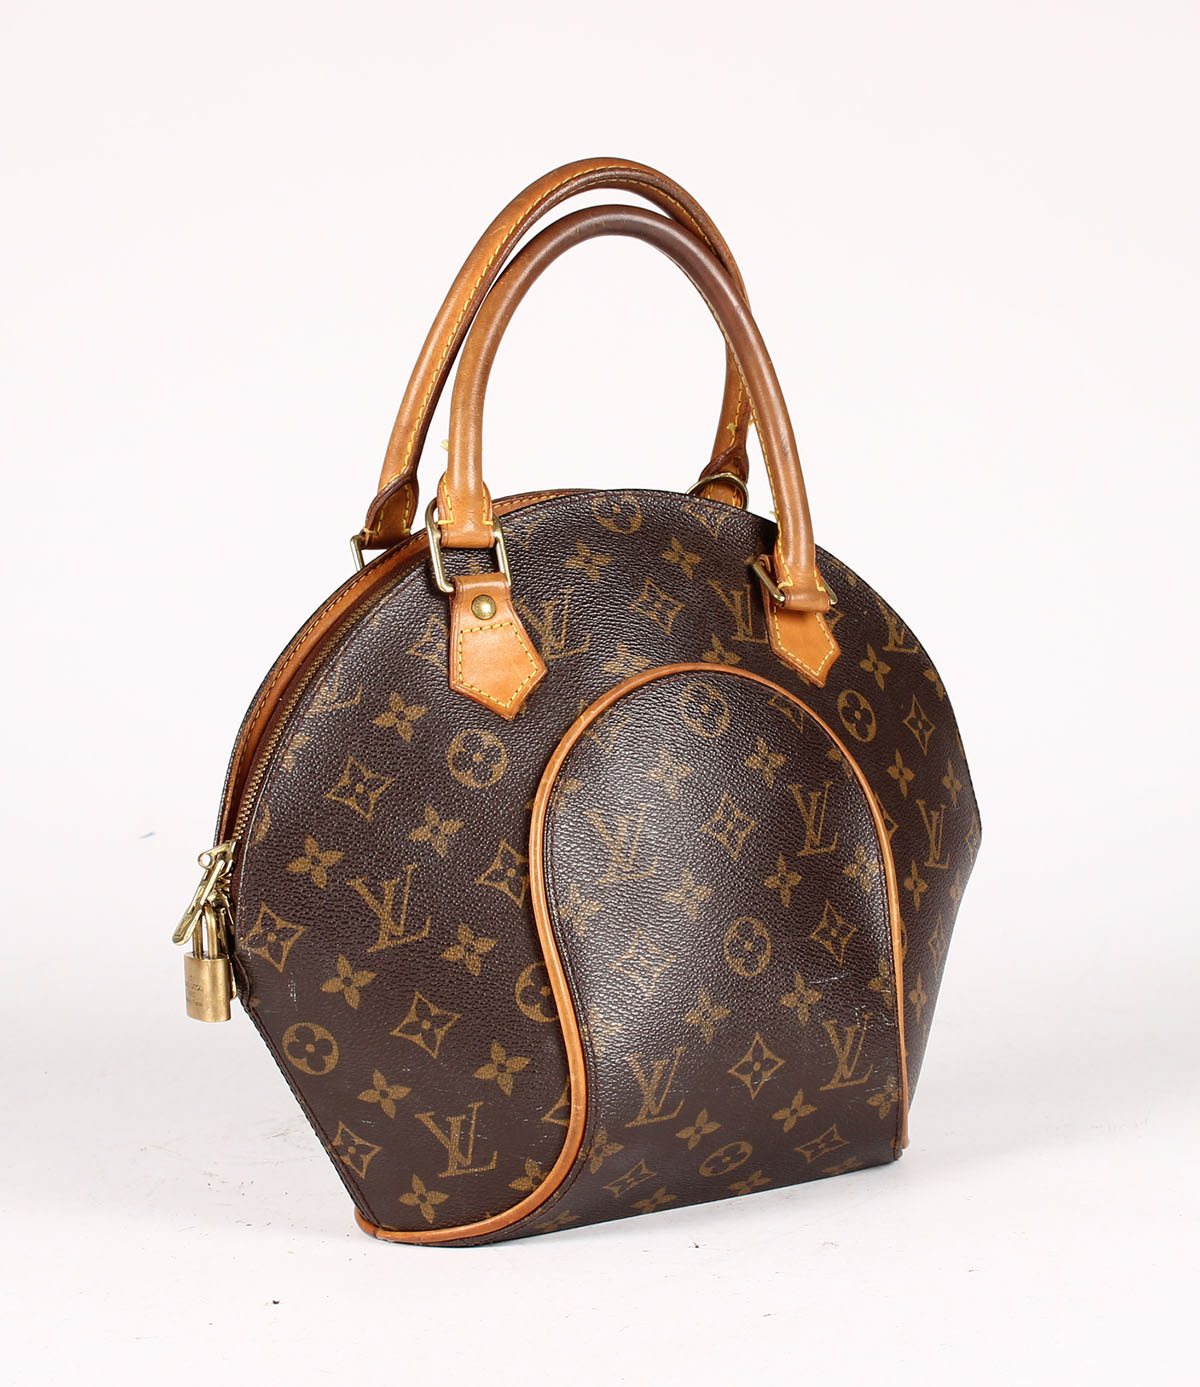 a5a7c2611928 Auction results for Louis Vuitton Luggage bag